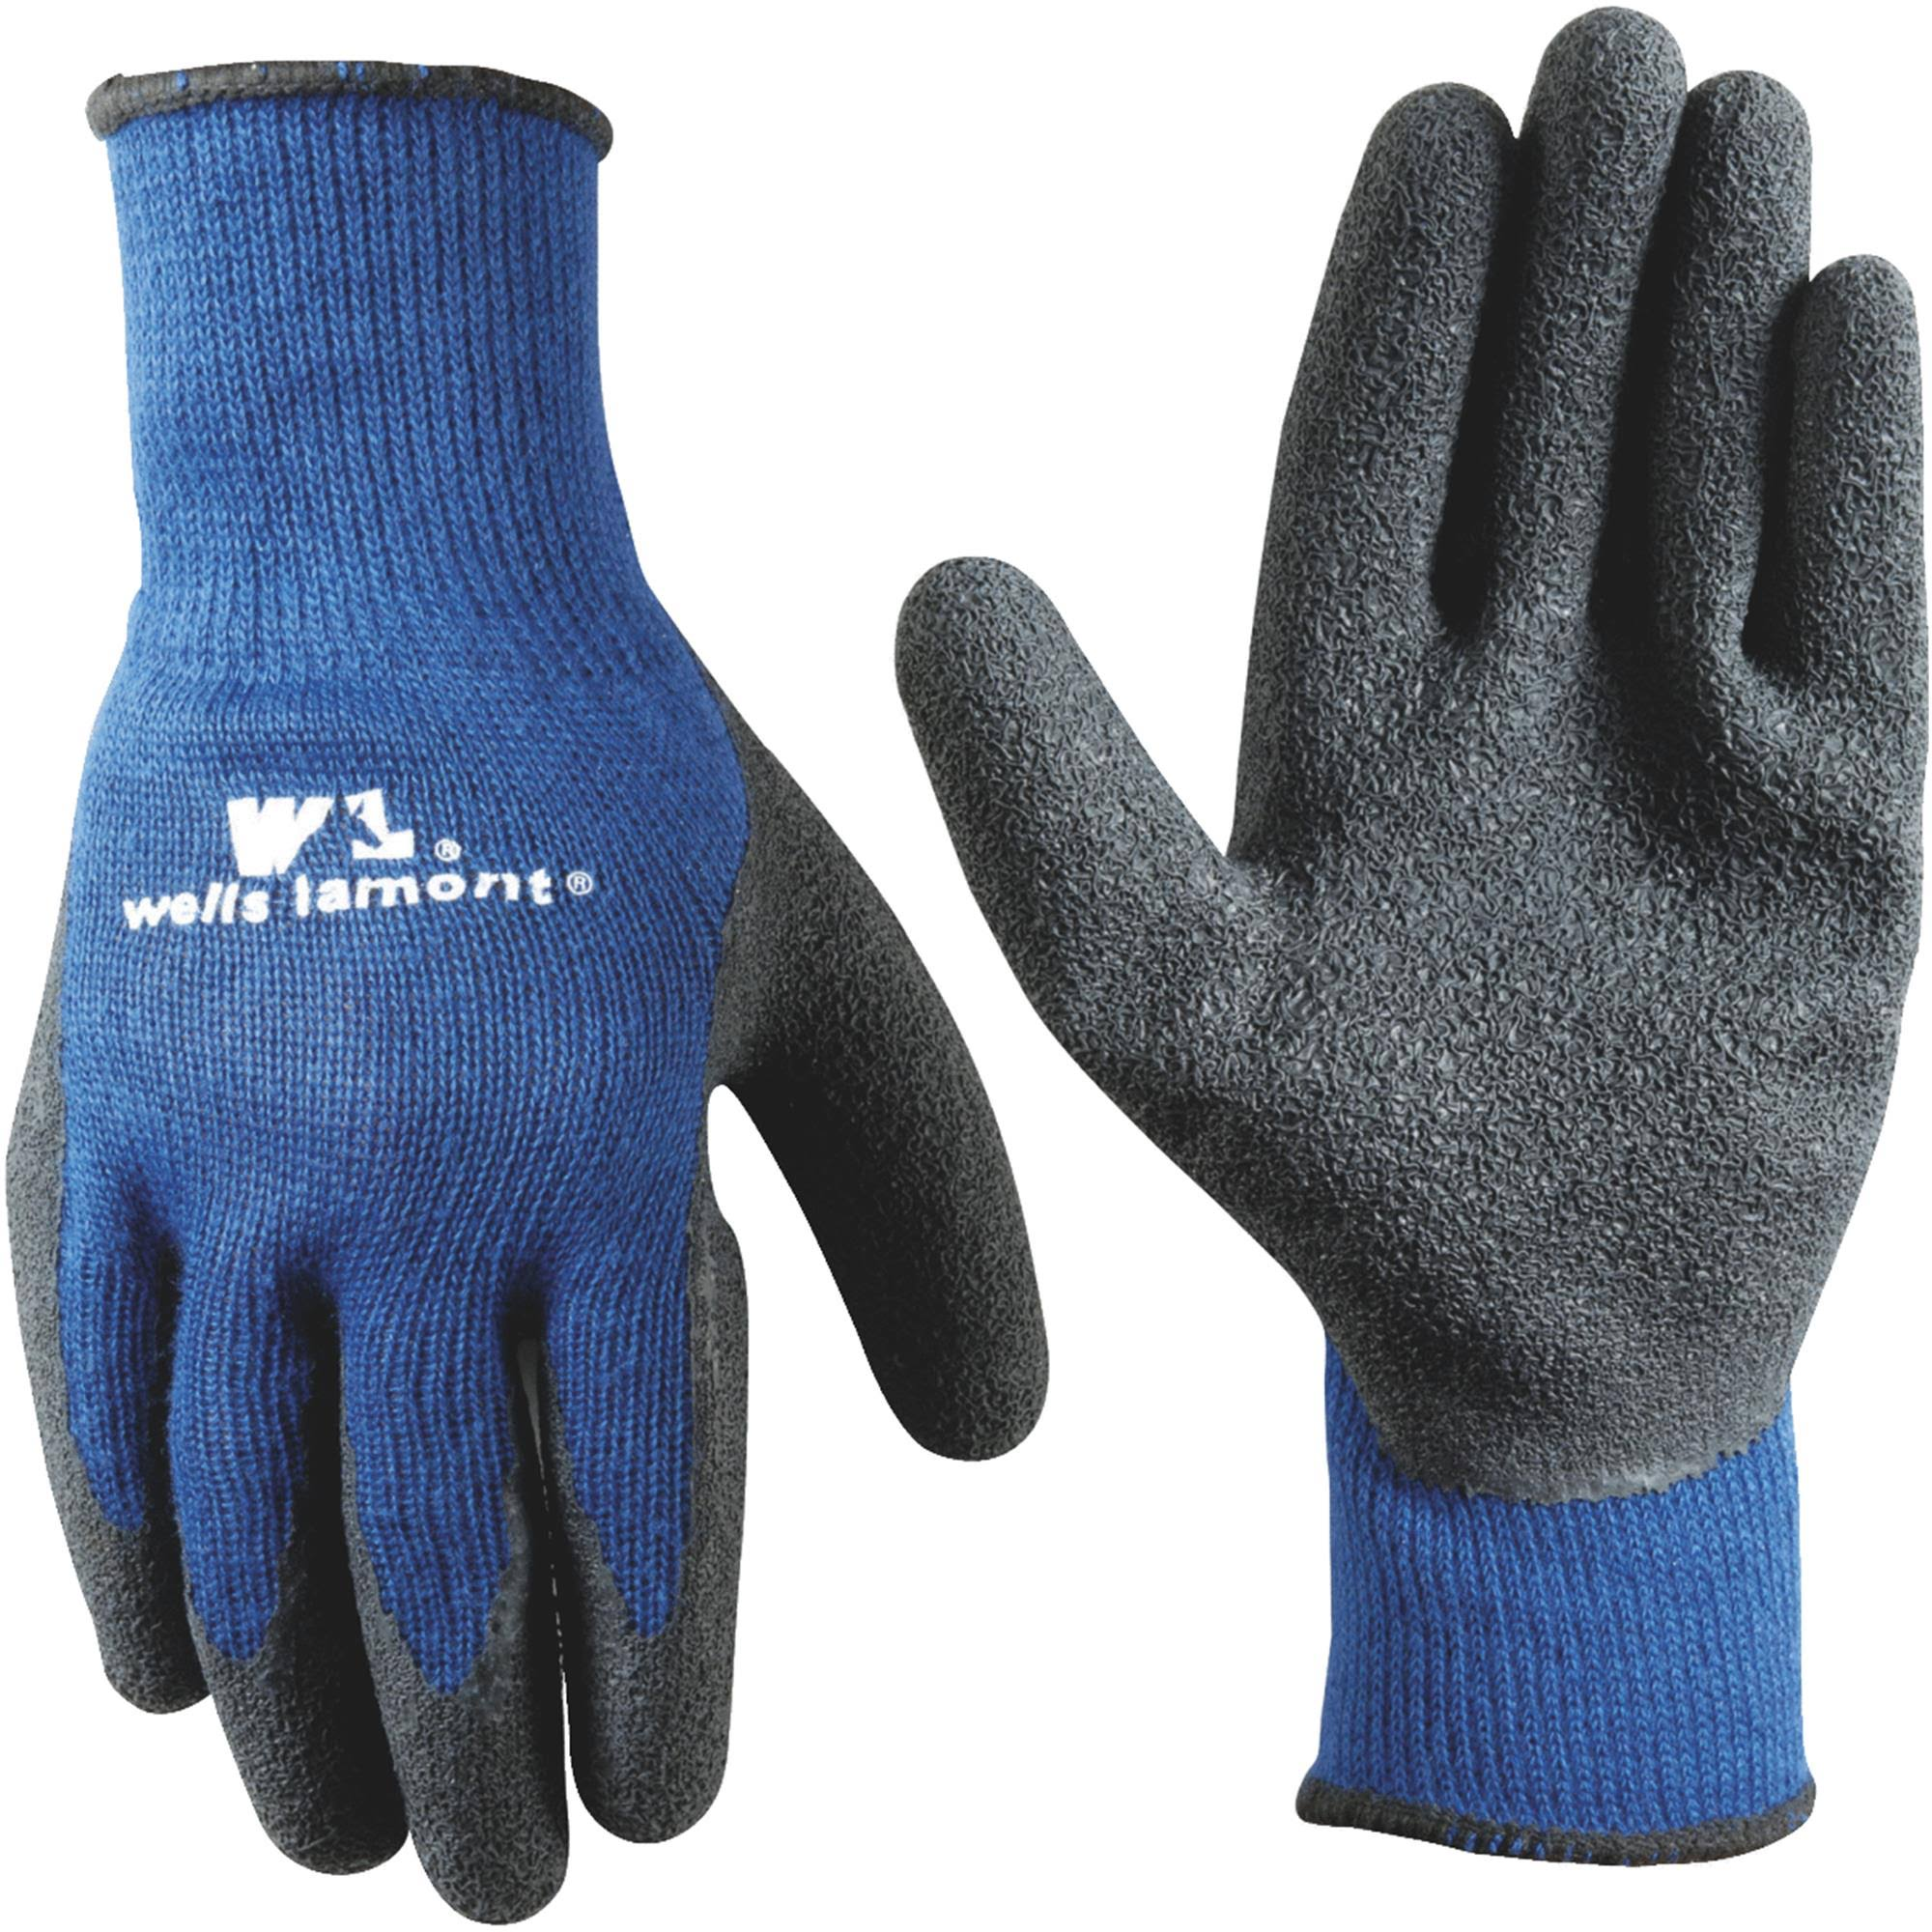 Wells Lamont 524xl Men's Latex Coated Knit Gloves - Blue, X-Large